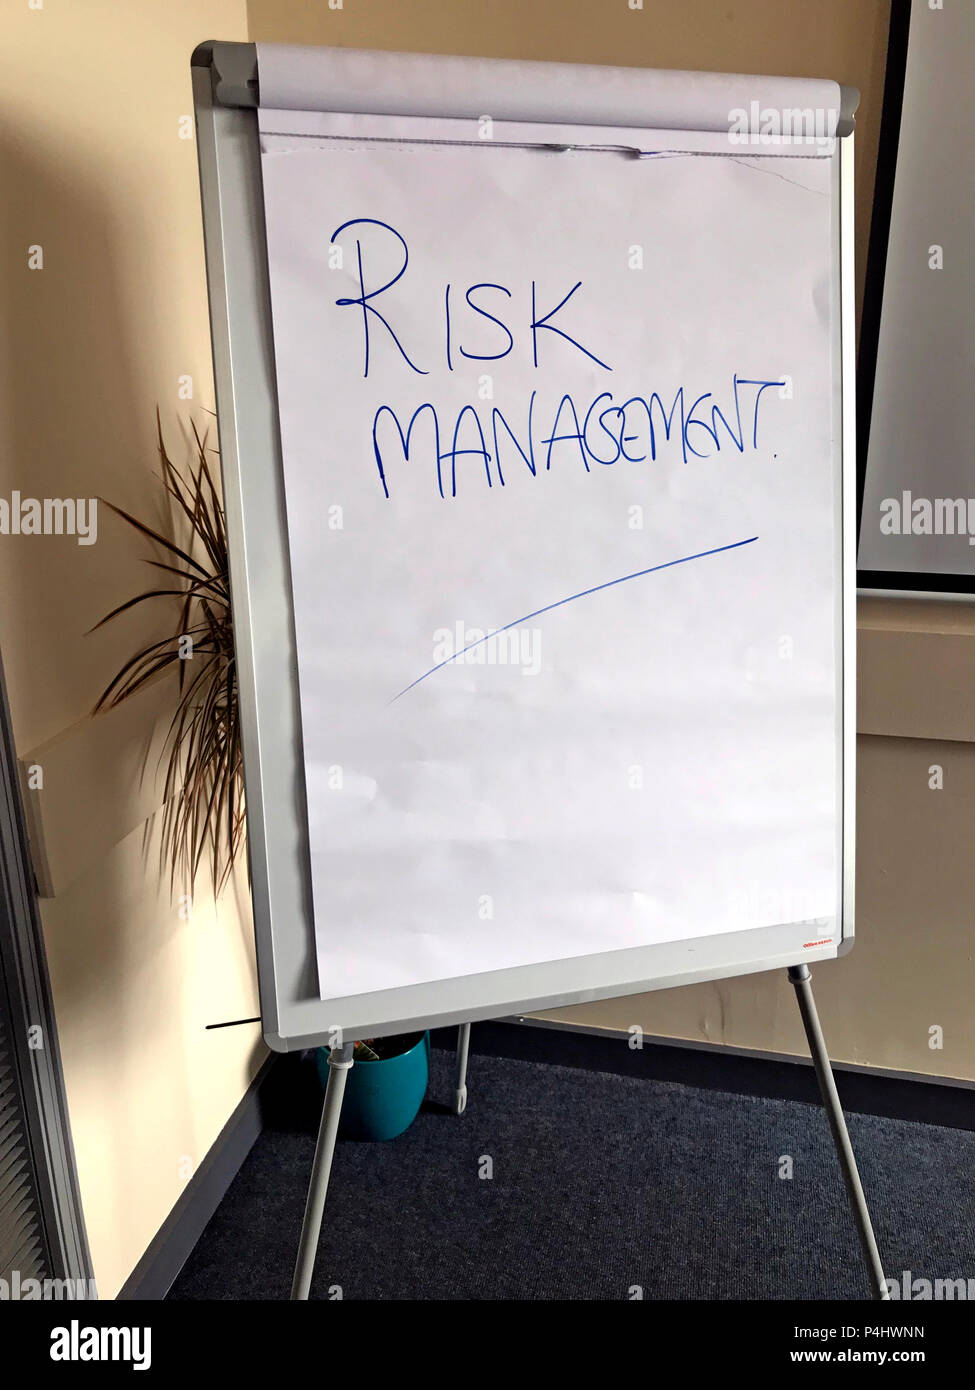 GoTonySmith,@HotpixUK,White,paper,with,write,Flip Chart,strategy,Management Of Risk,reduce,risk,reduce risk,action,activity,planning,project risk management,mindshower,brain storming,brainstorming,analyse,direction,business concept